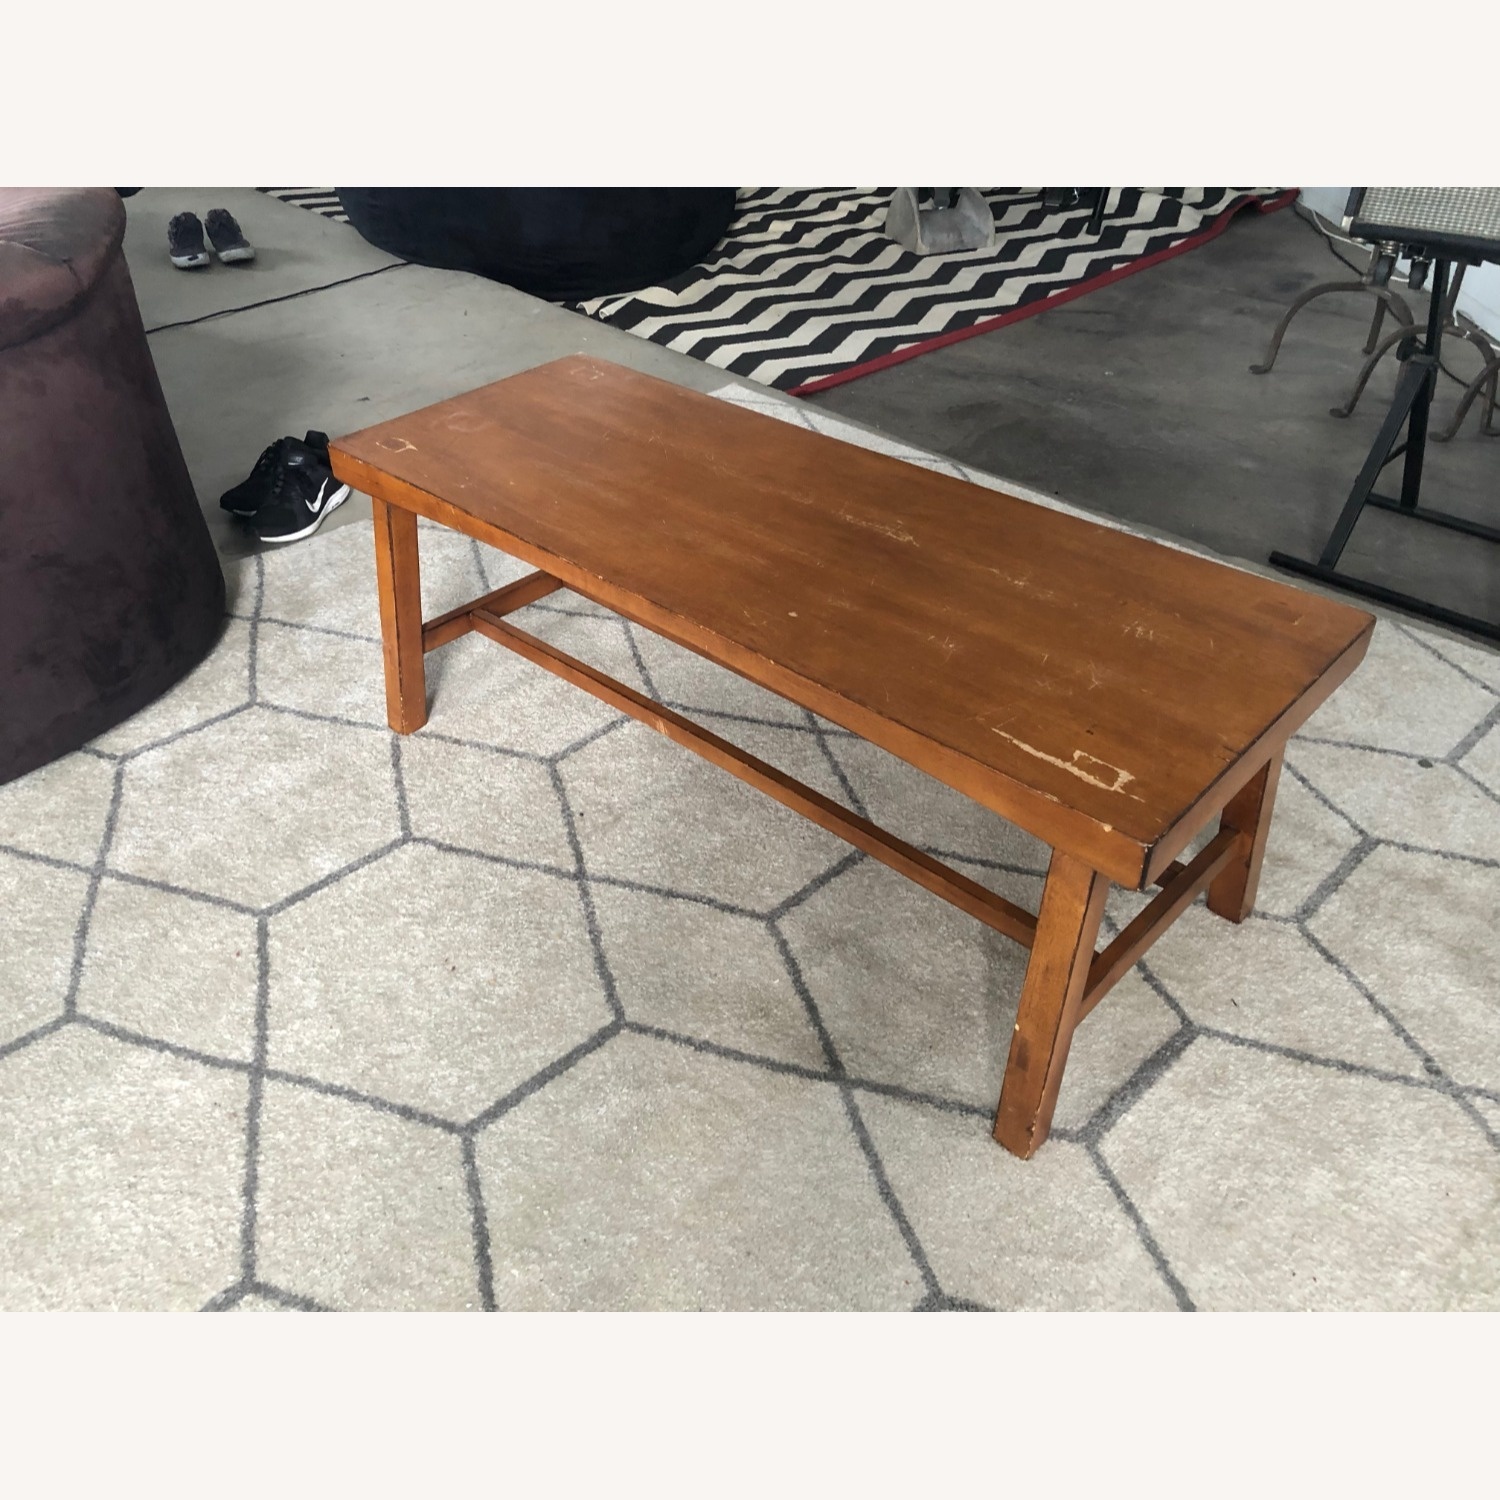 Pottery Barn Tibetan Coffee Table - image-1